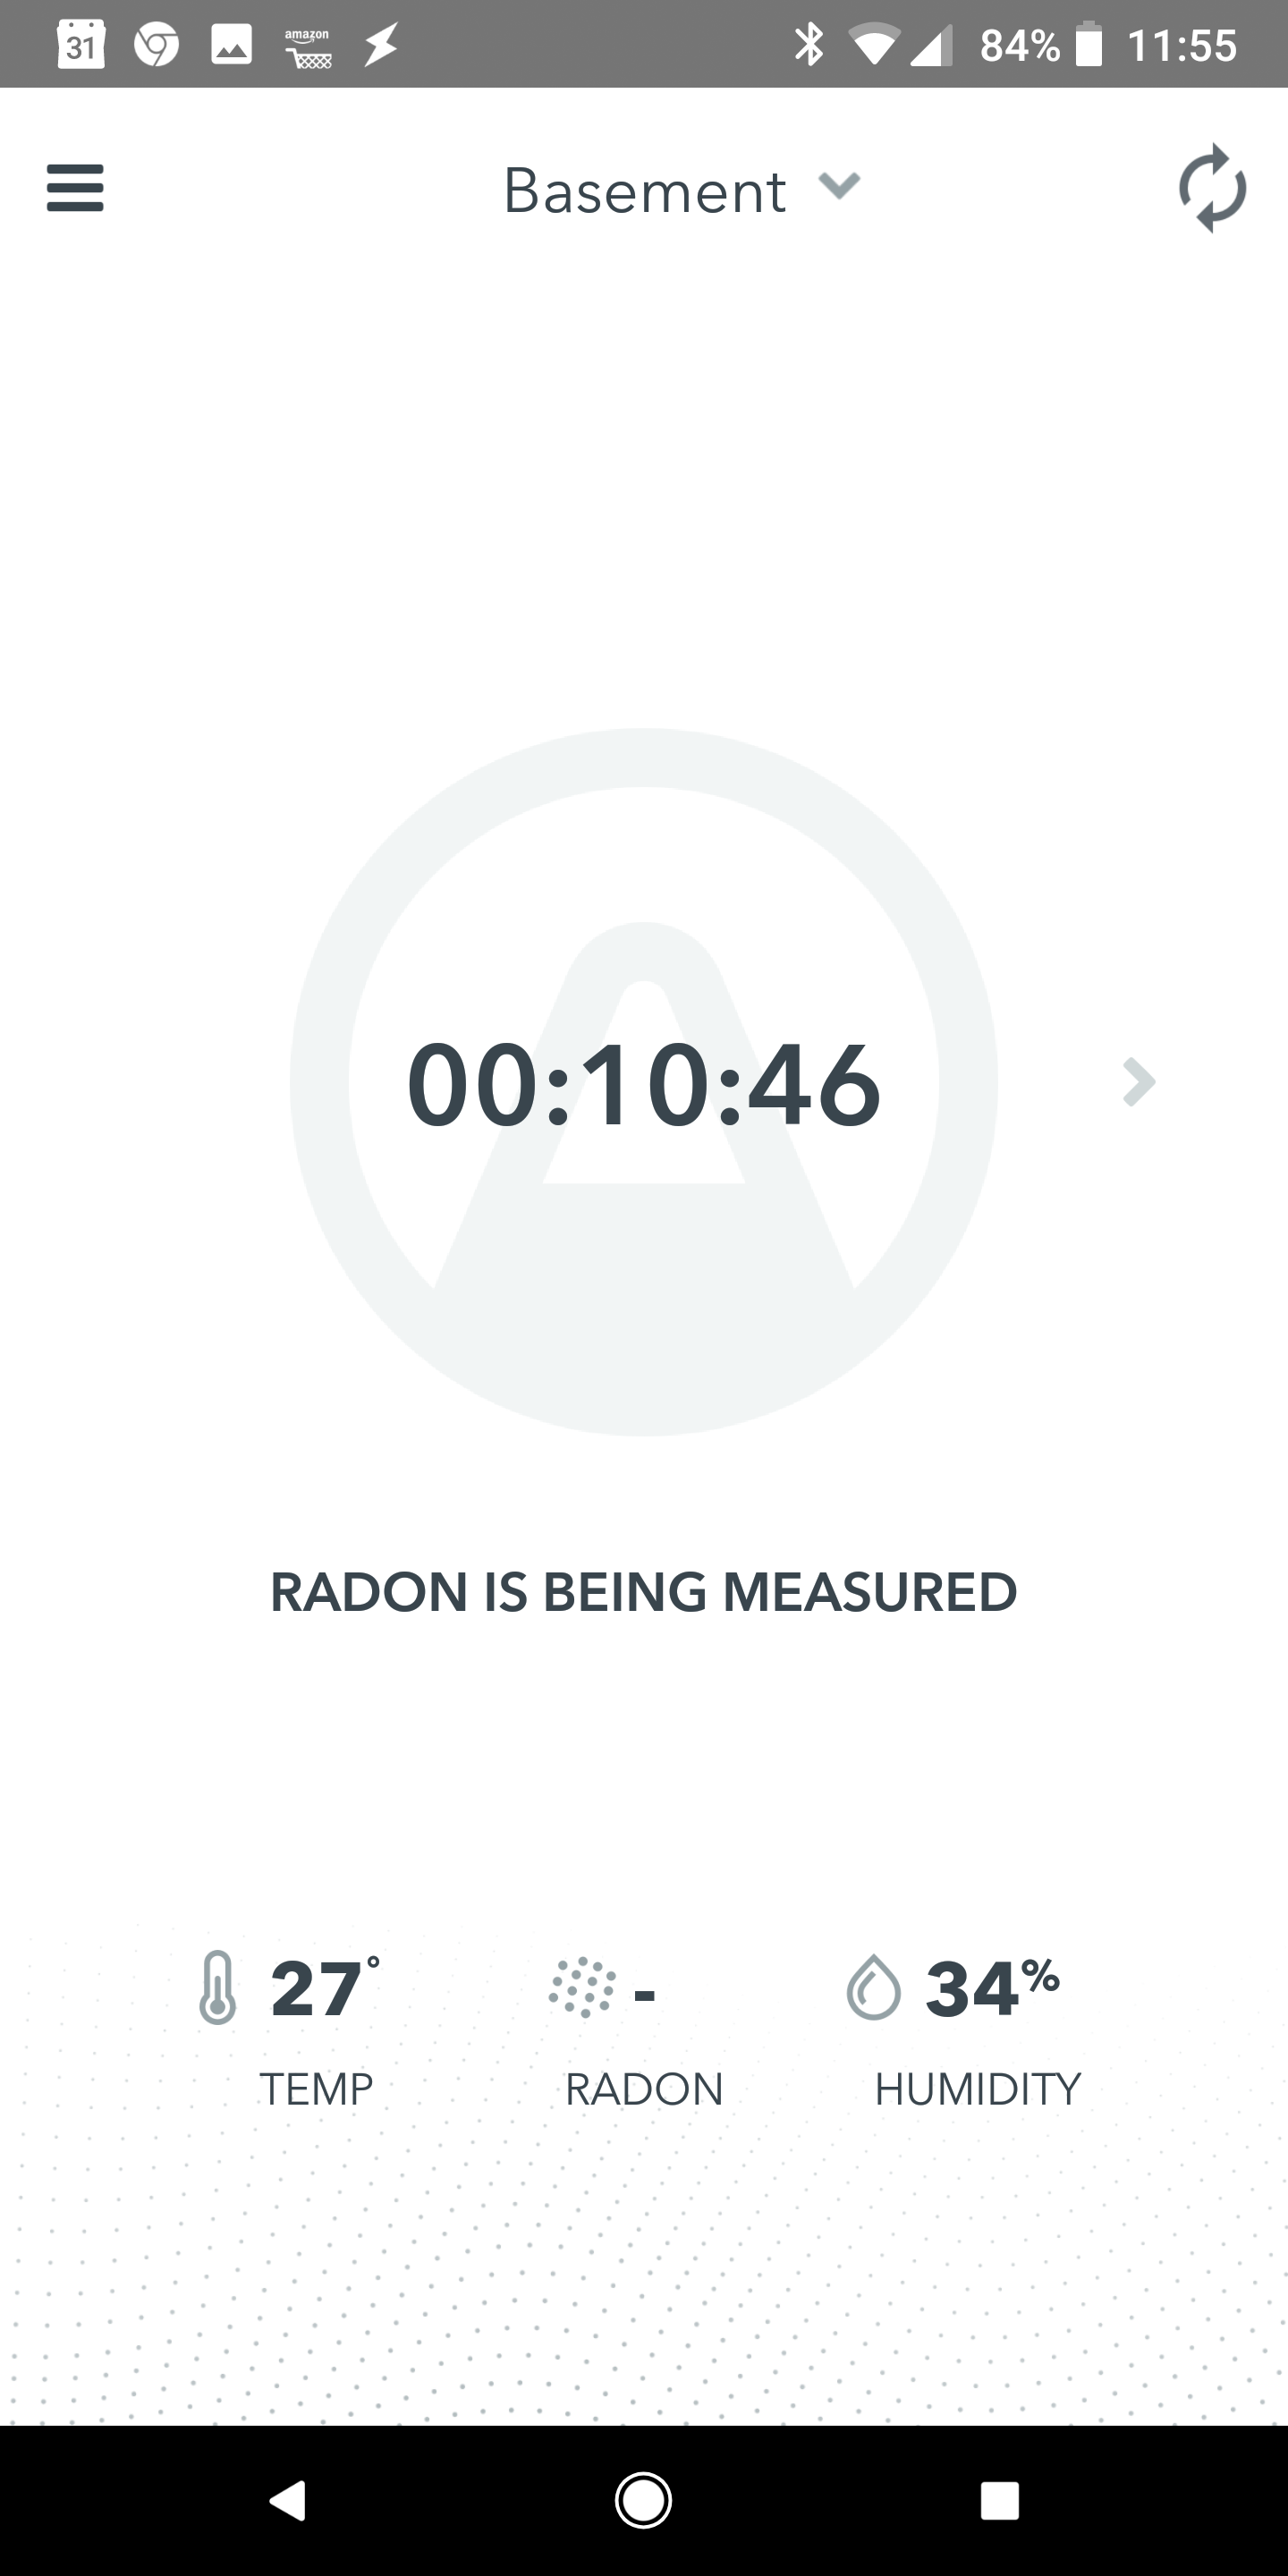 Decoding the Airthings Wave Radon output